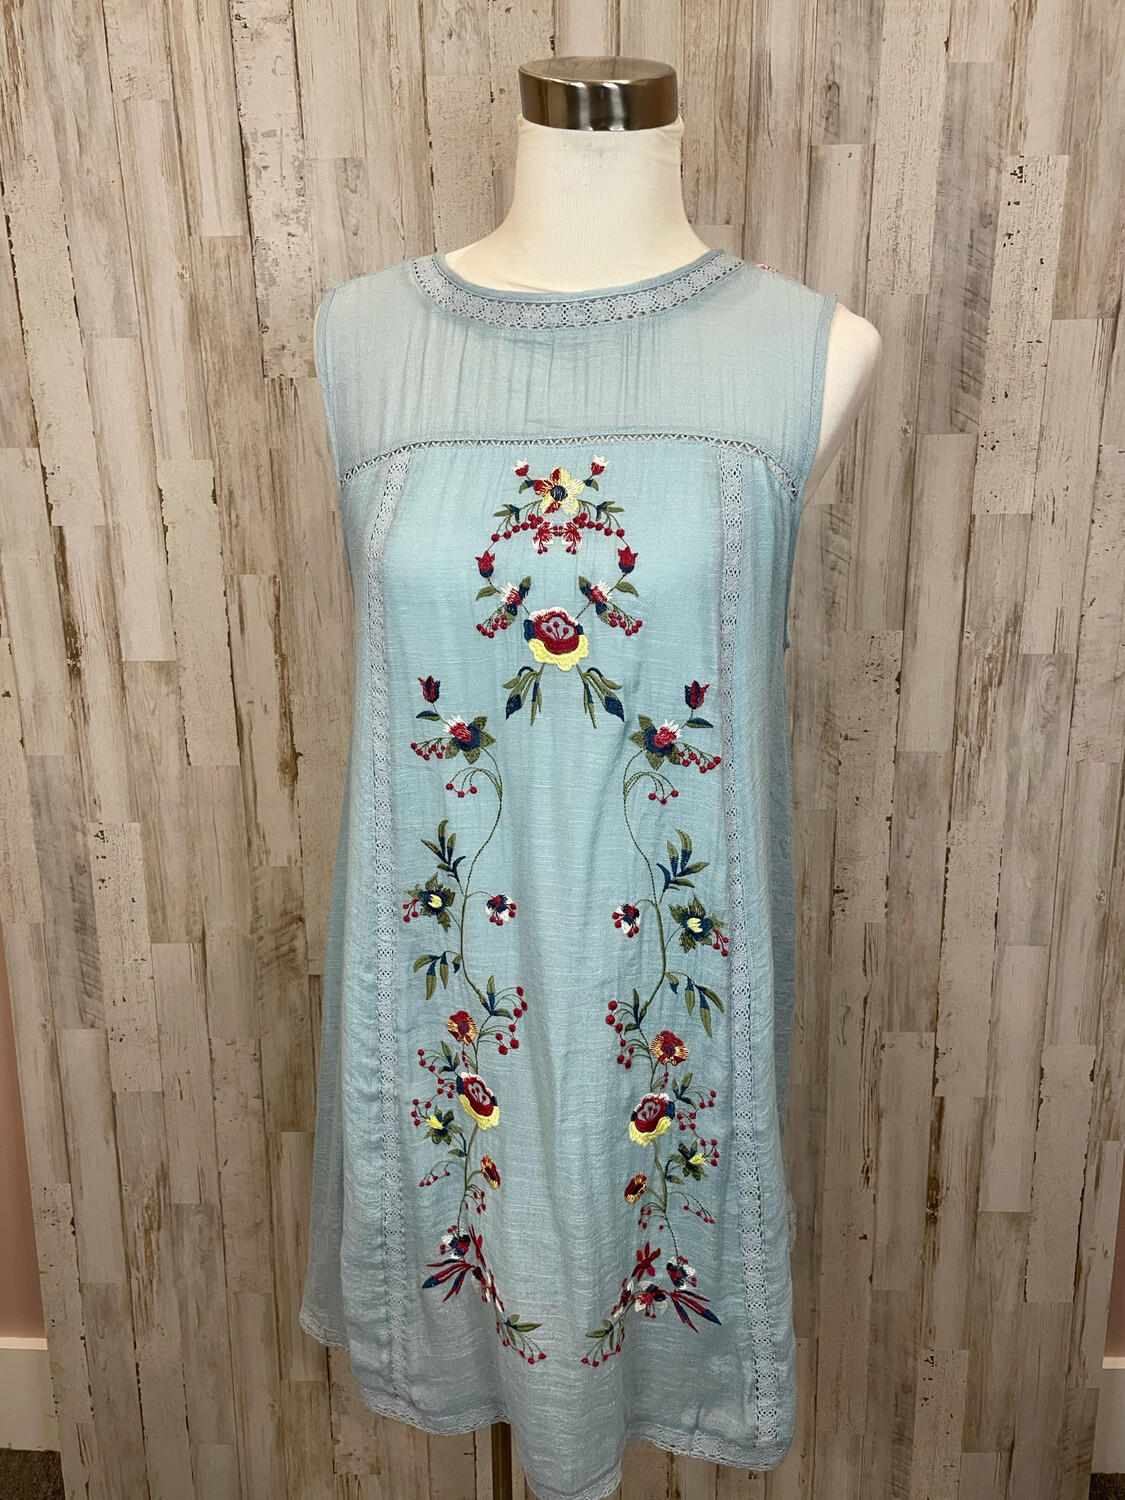 Umgee Blue Embroidered Floral Dress - M